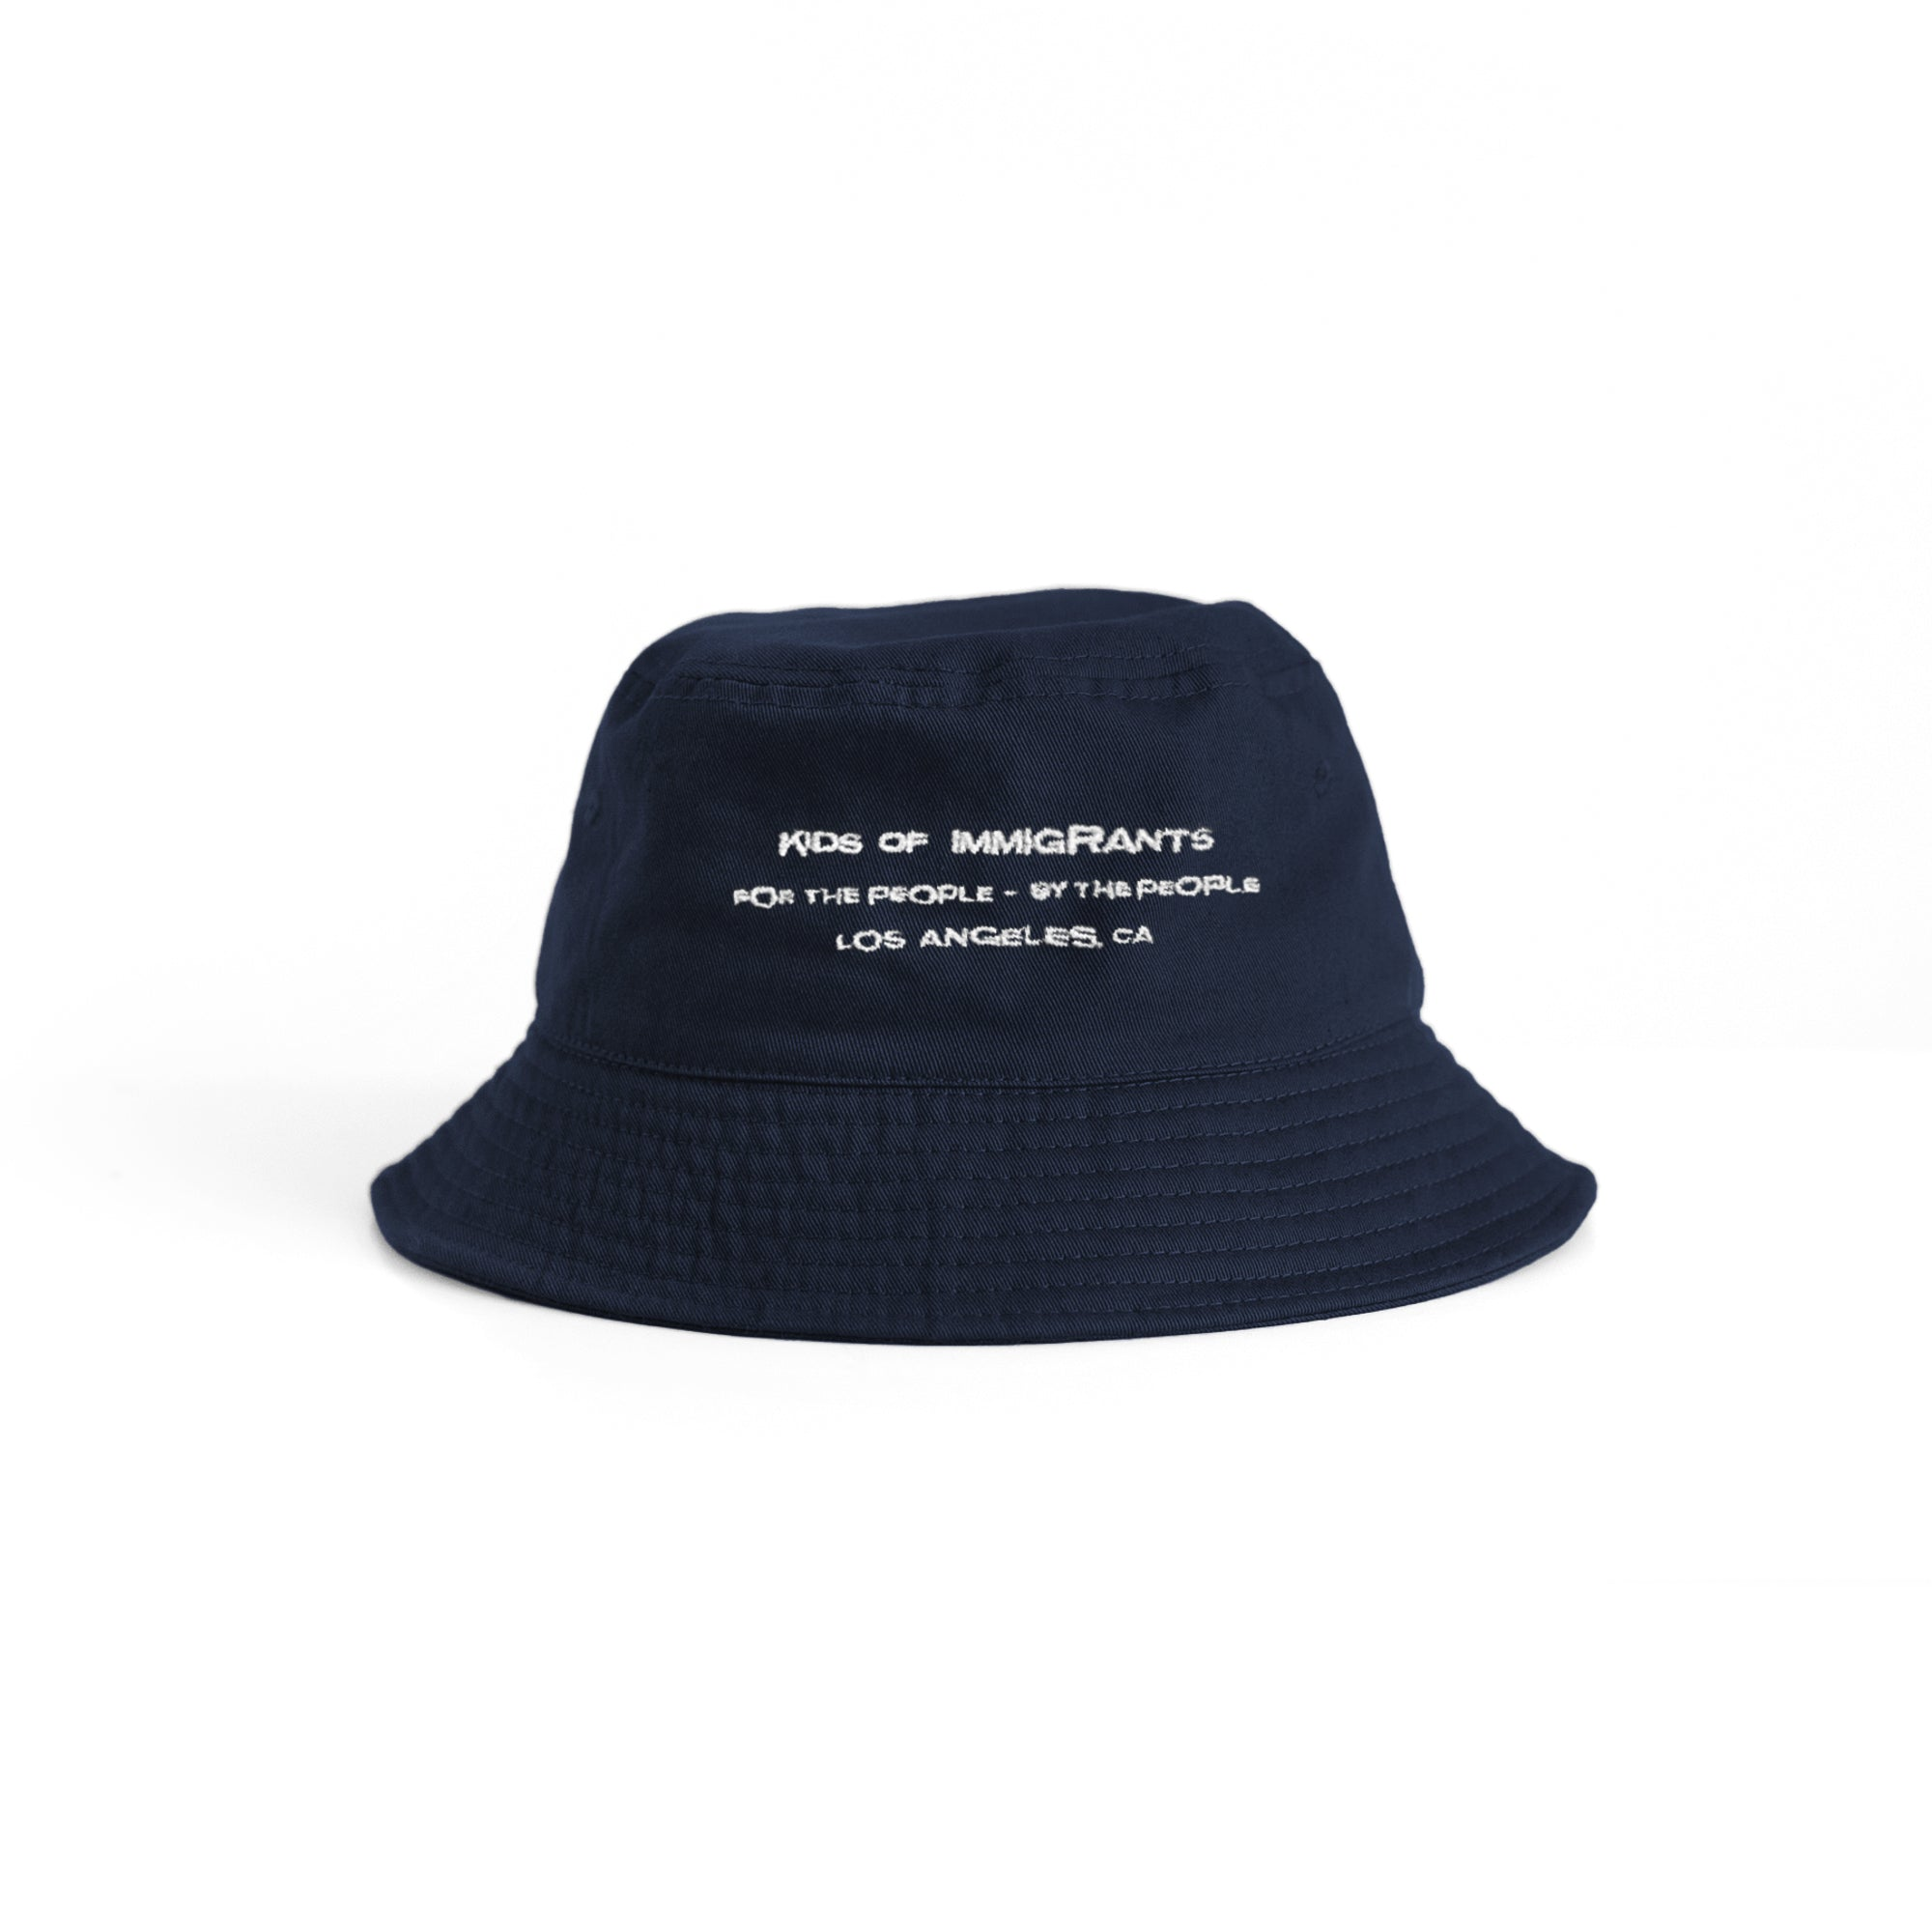 KIDS OF IMMIGRANTS BUCKET HAT 3.0 - NAVY BLUE